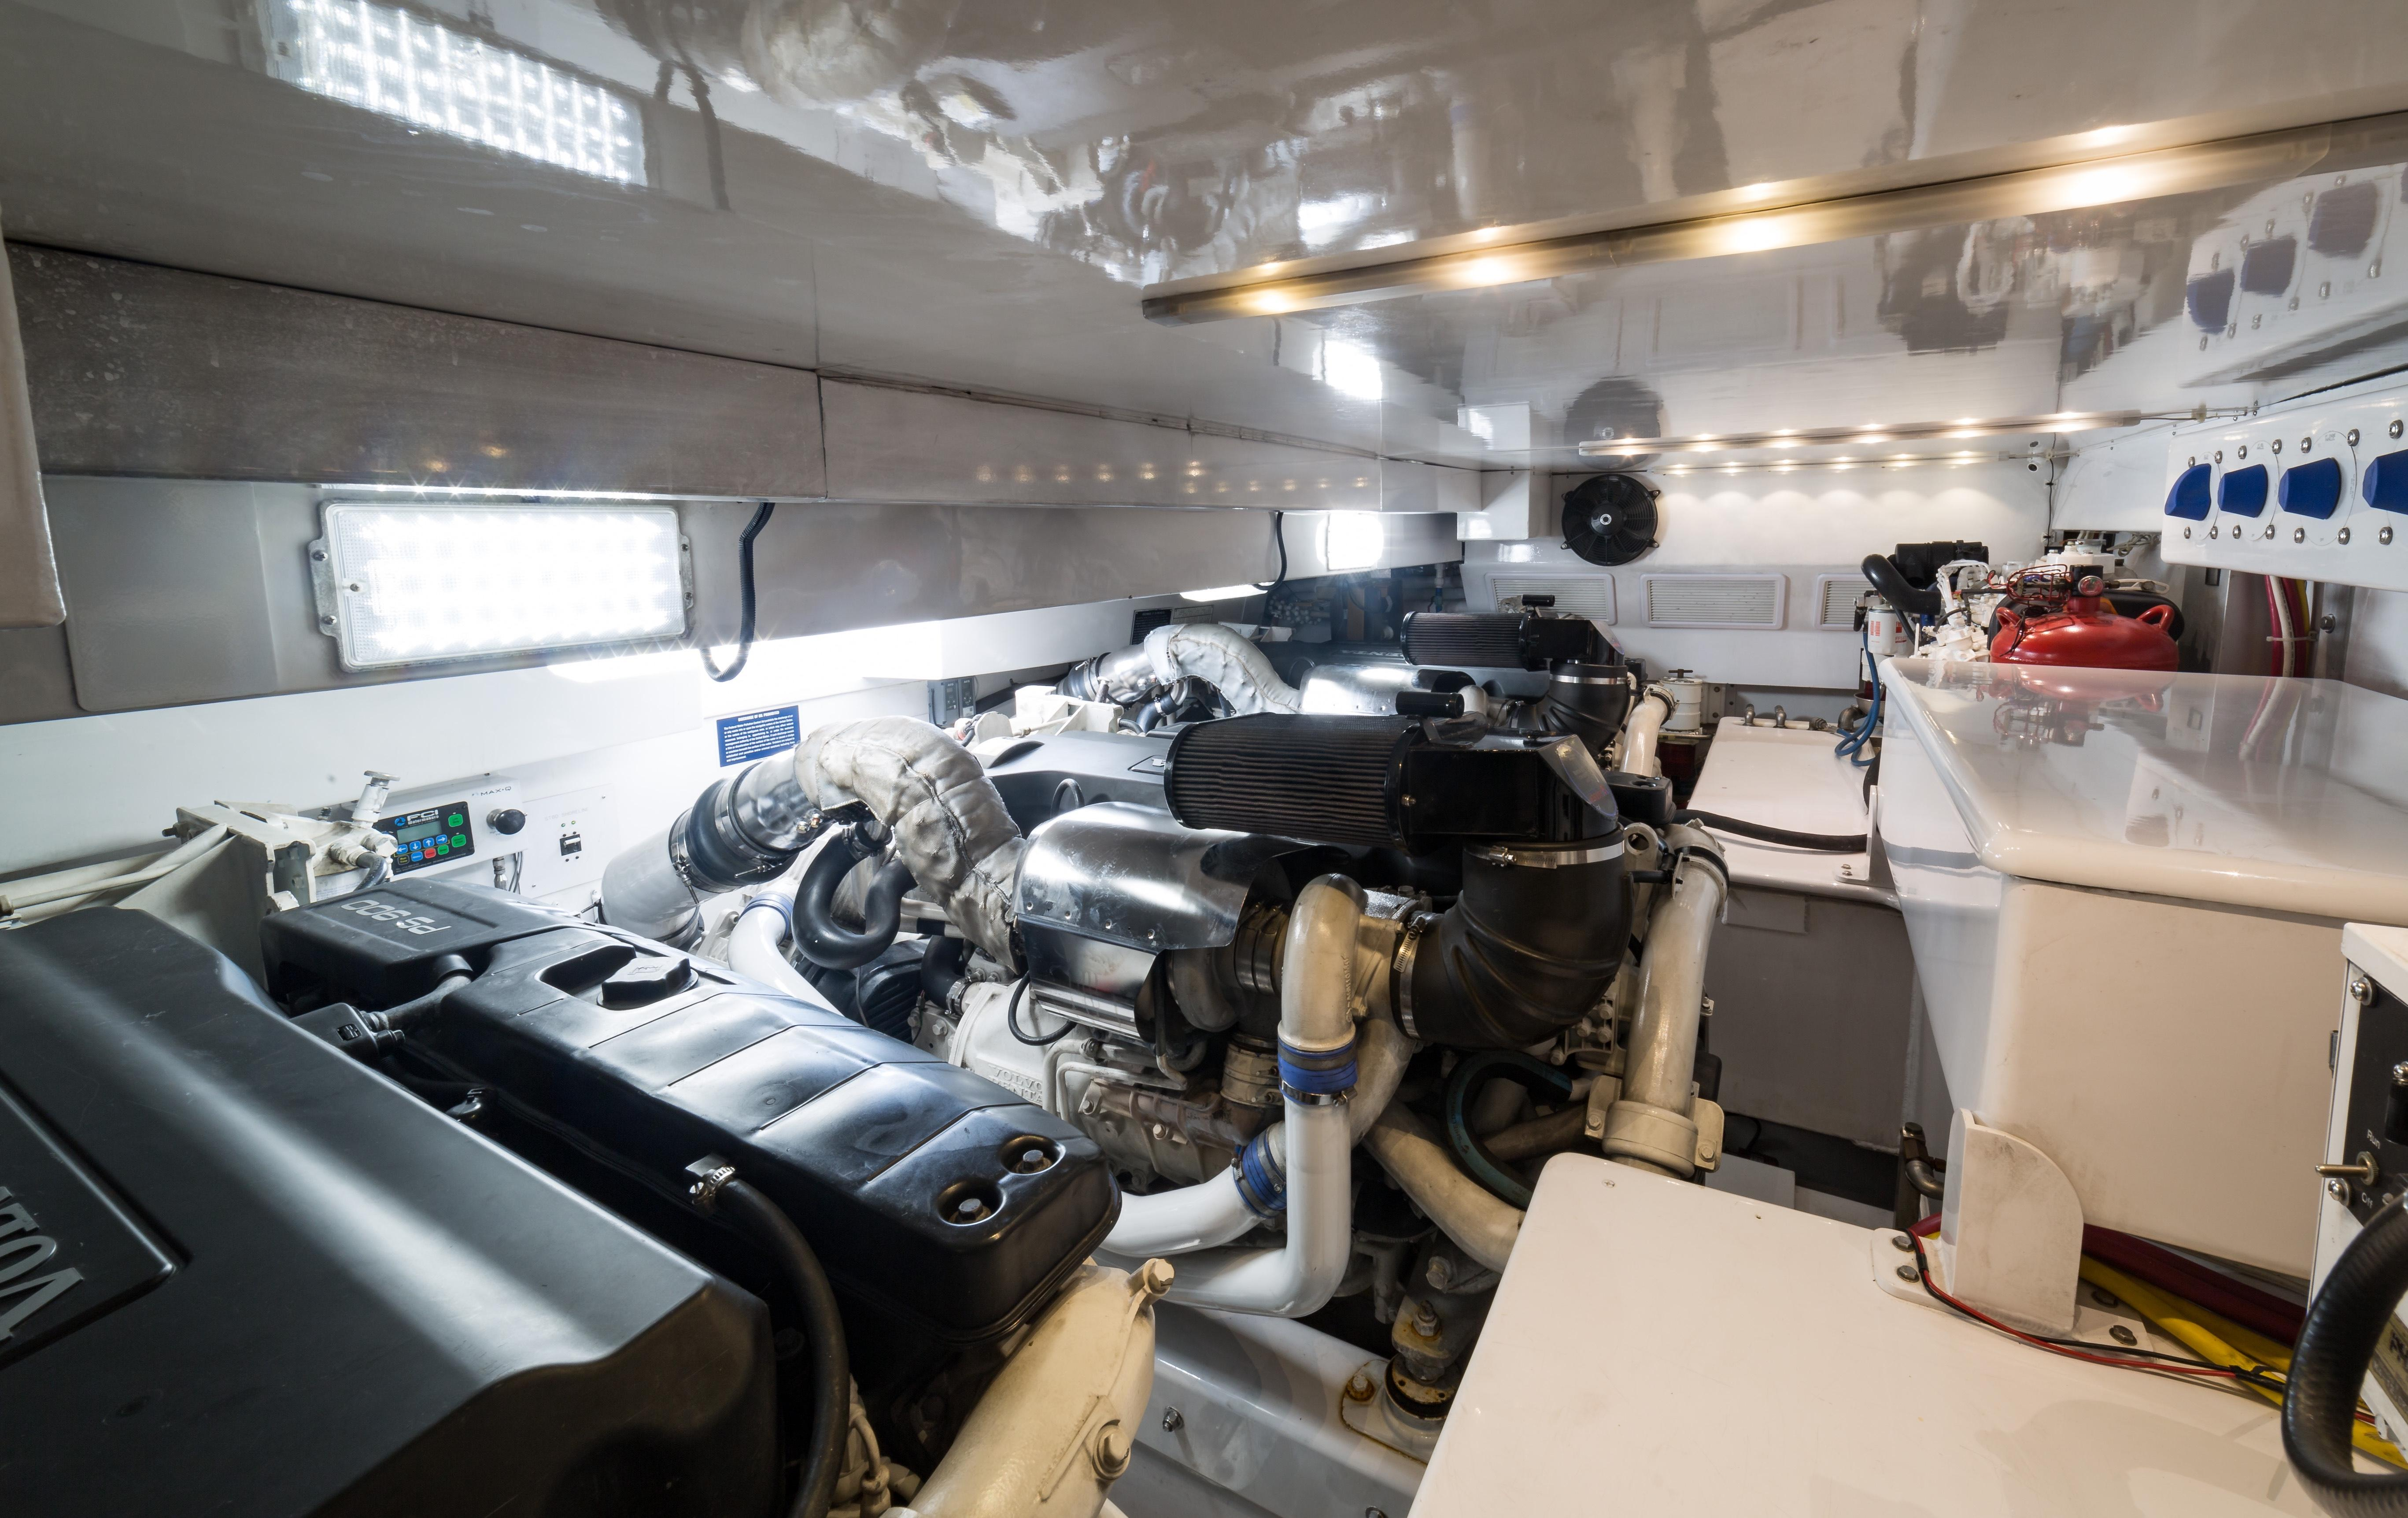 Engine room overview